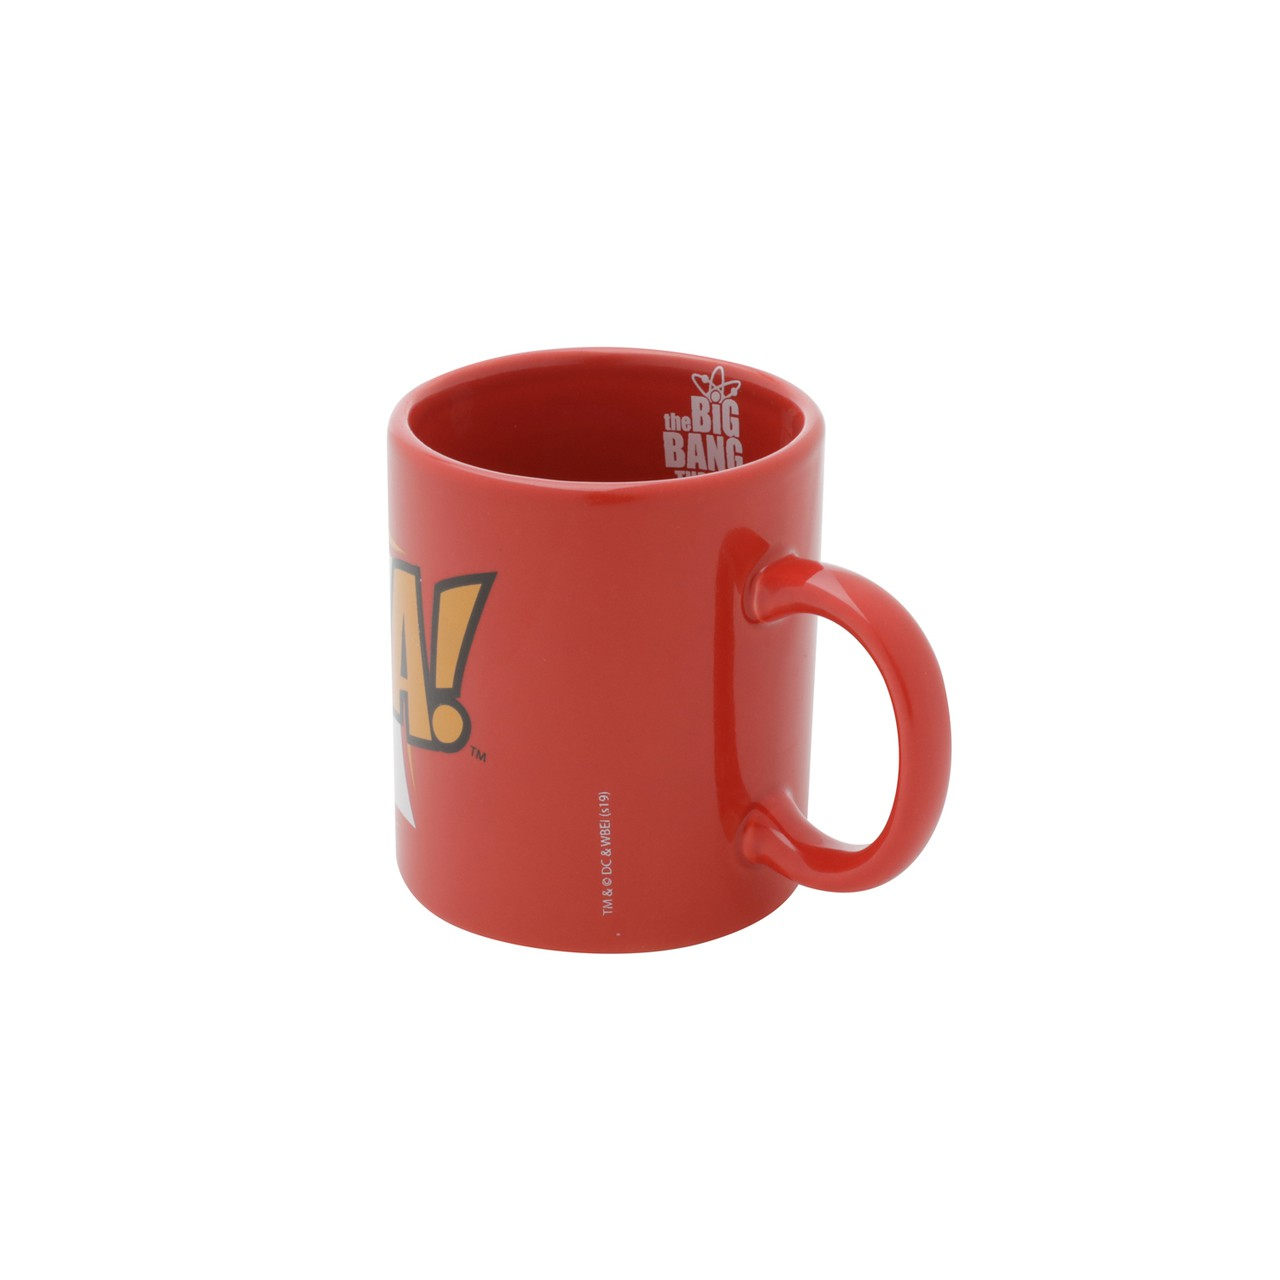 Mini Caneca de Porcelana Bazinga ( The Big Bang Theory ) - Urban